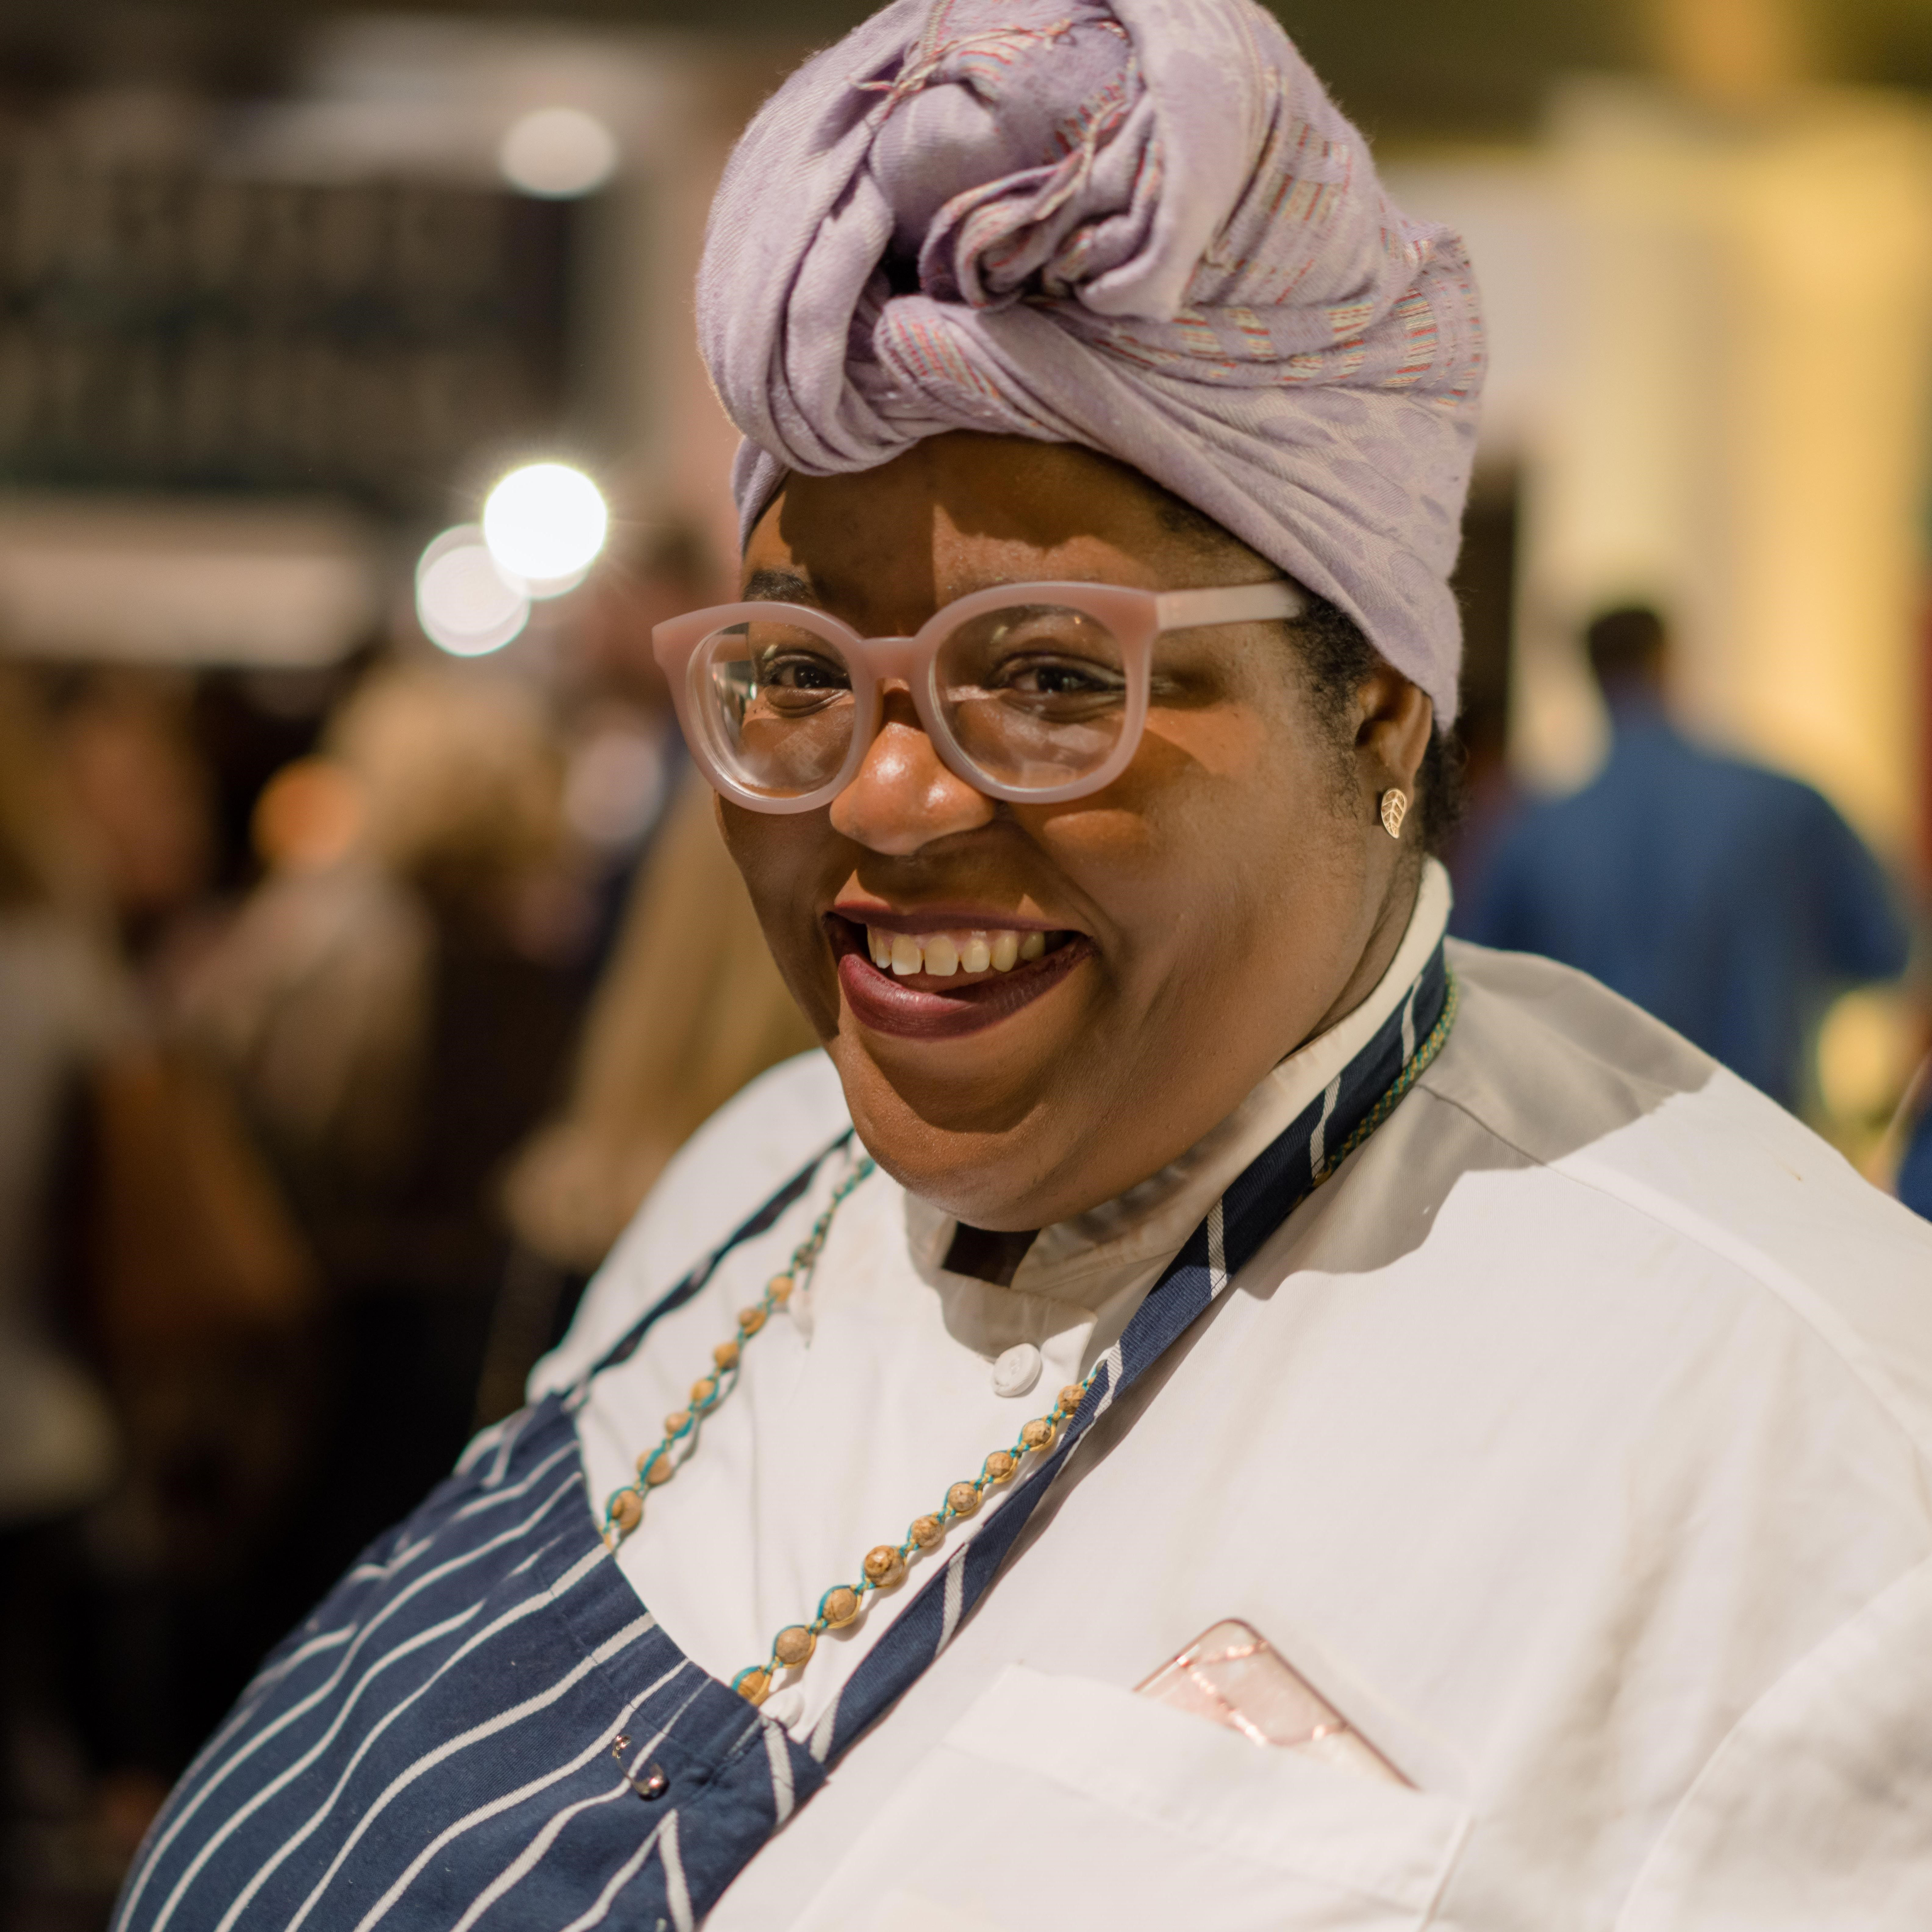 """Chef Thérèse Nelson is the founder of Black Culinary History, described on blackculinaryhistory.com as """"aplace for reverent examination of our culinary past while supporting the work that will build our culinary future."""""""